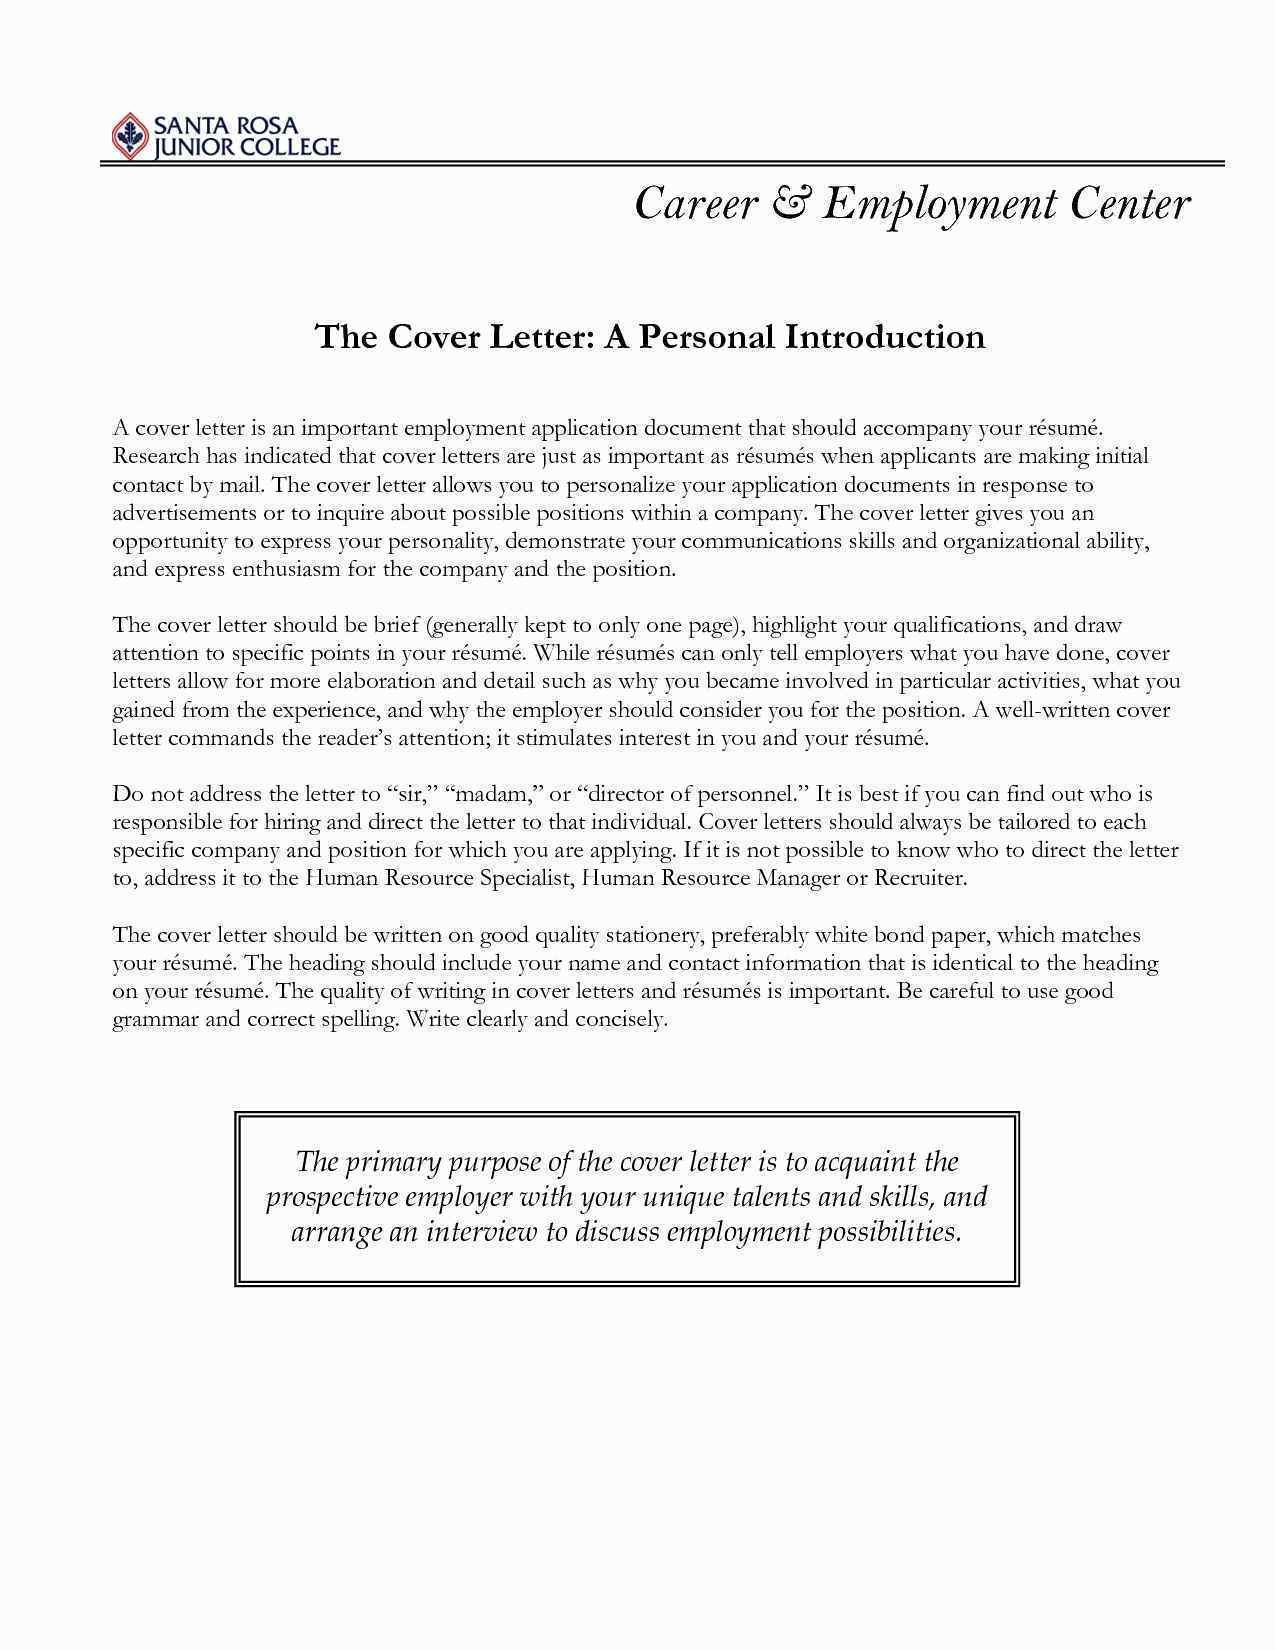 Writing A Cover Letter for A Resume - College Graduate Cover Le Refrence Legal Cover Letter Sample Unique